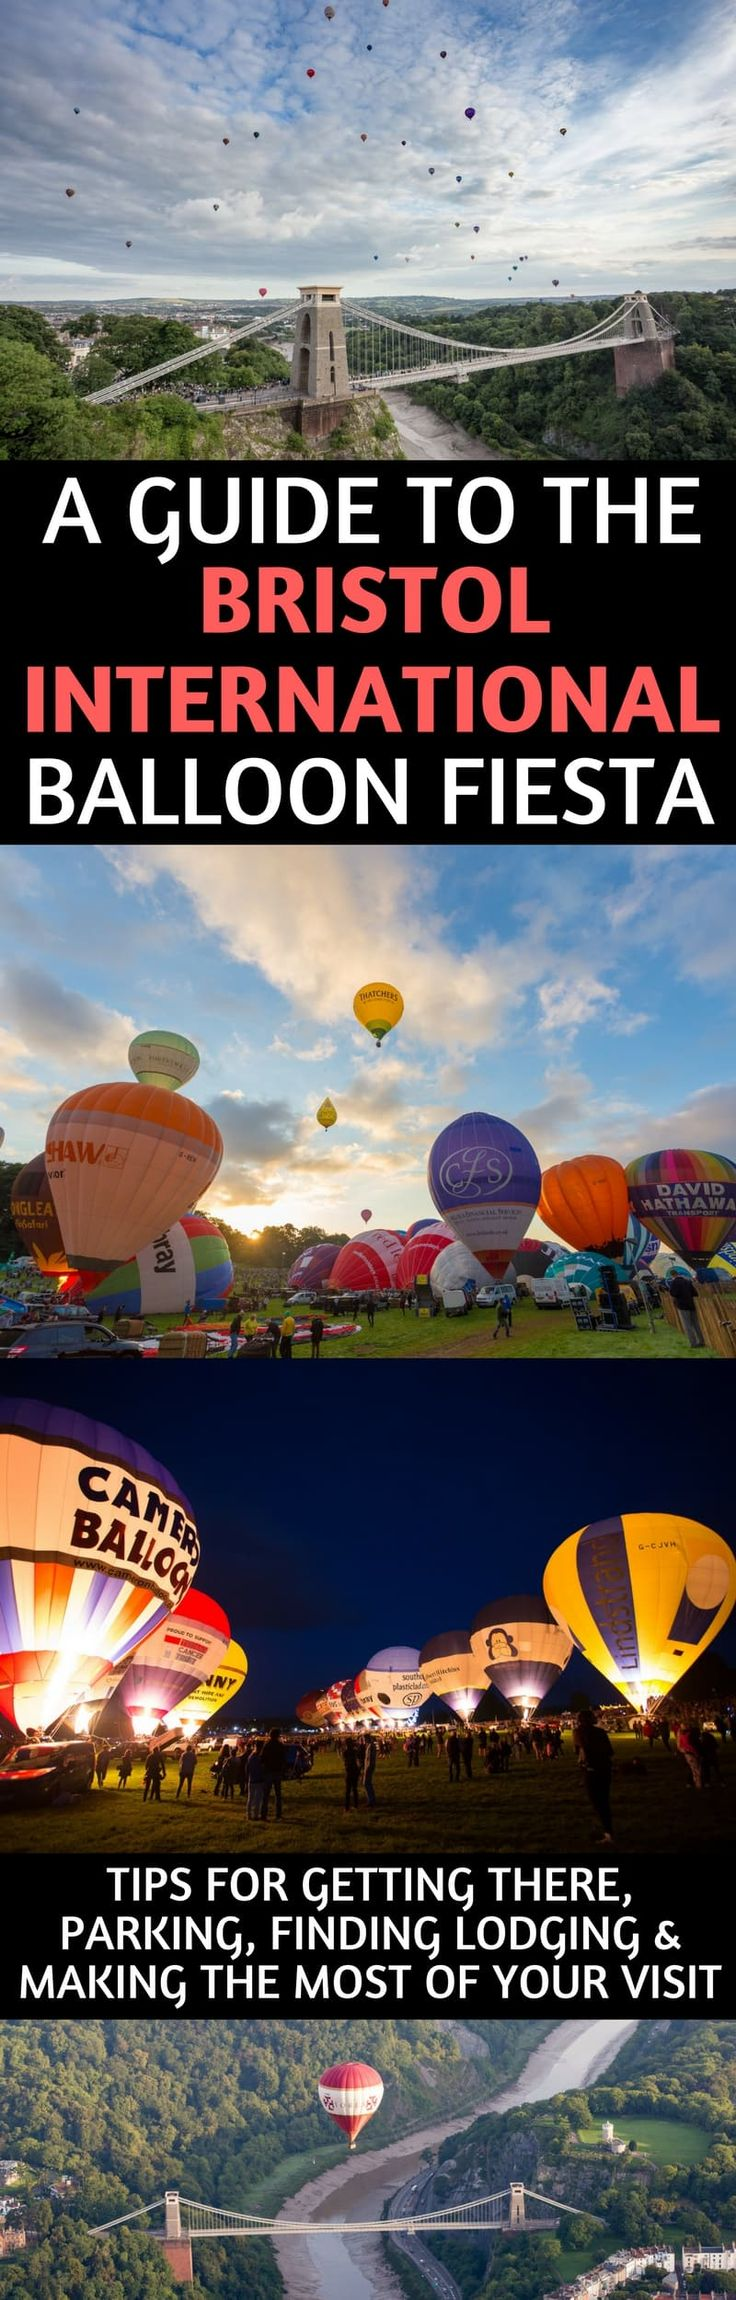 A guide to attending the Bristol International Balloon Fiesta held each August in Bristol, England, UK. We provide tips for getting there, parking, what to see and do, best hot air balloon viewing spots, finding lodging, and making the most of your time at the Bristol Balloon Fiesta. #Bristol #BristolBalloonFiesta #BalloonFiesta #England #UKfestivals